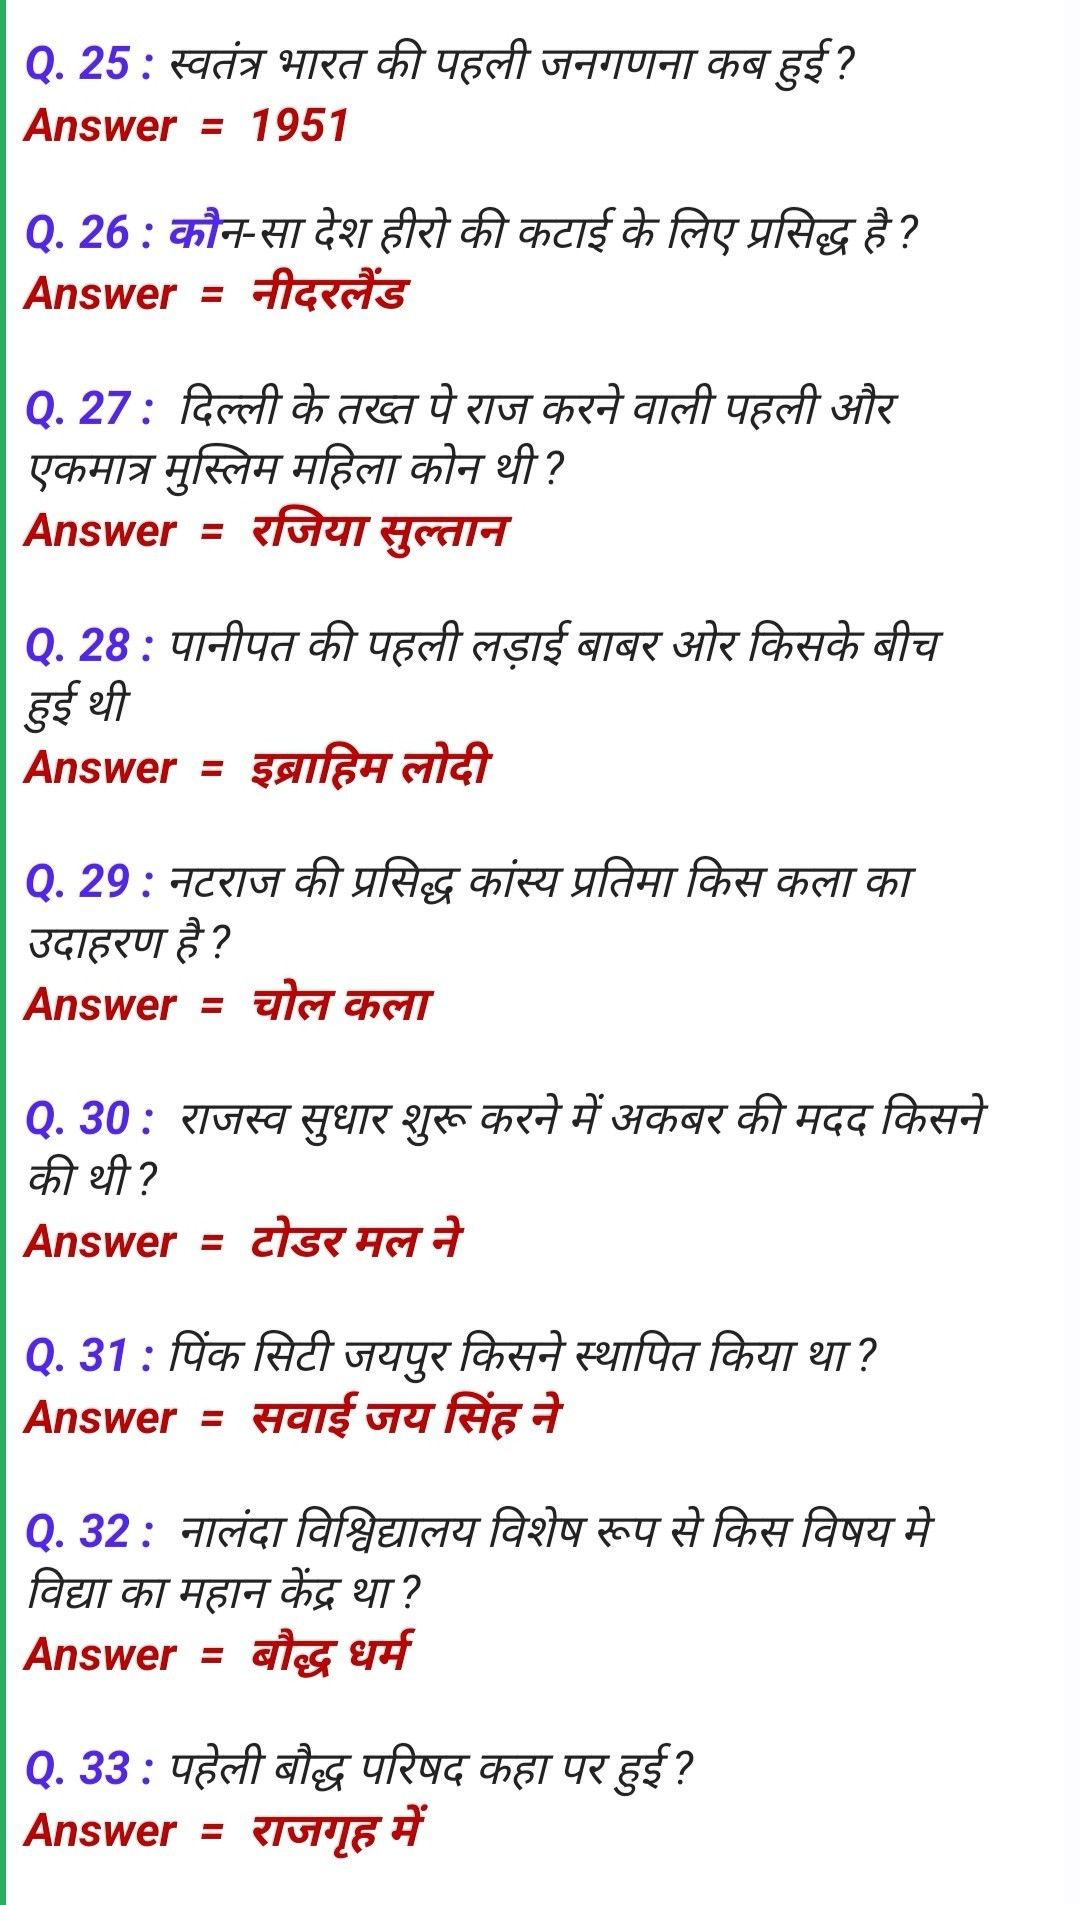 Hindi Bible Quiz Questions And Answers Pdf